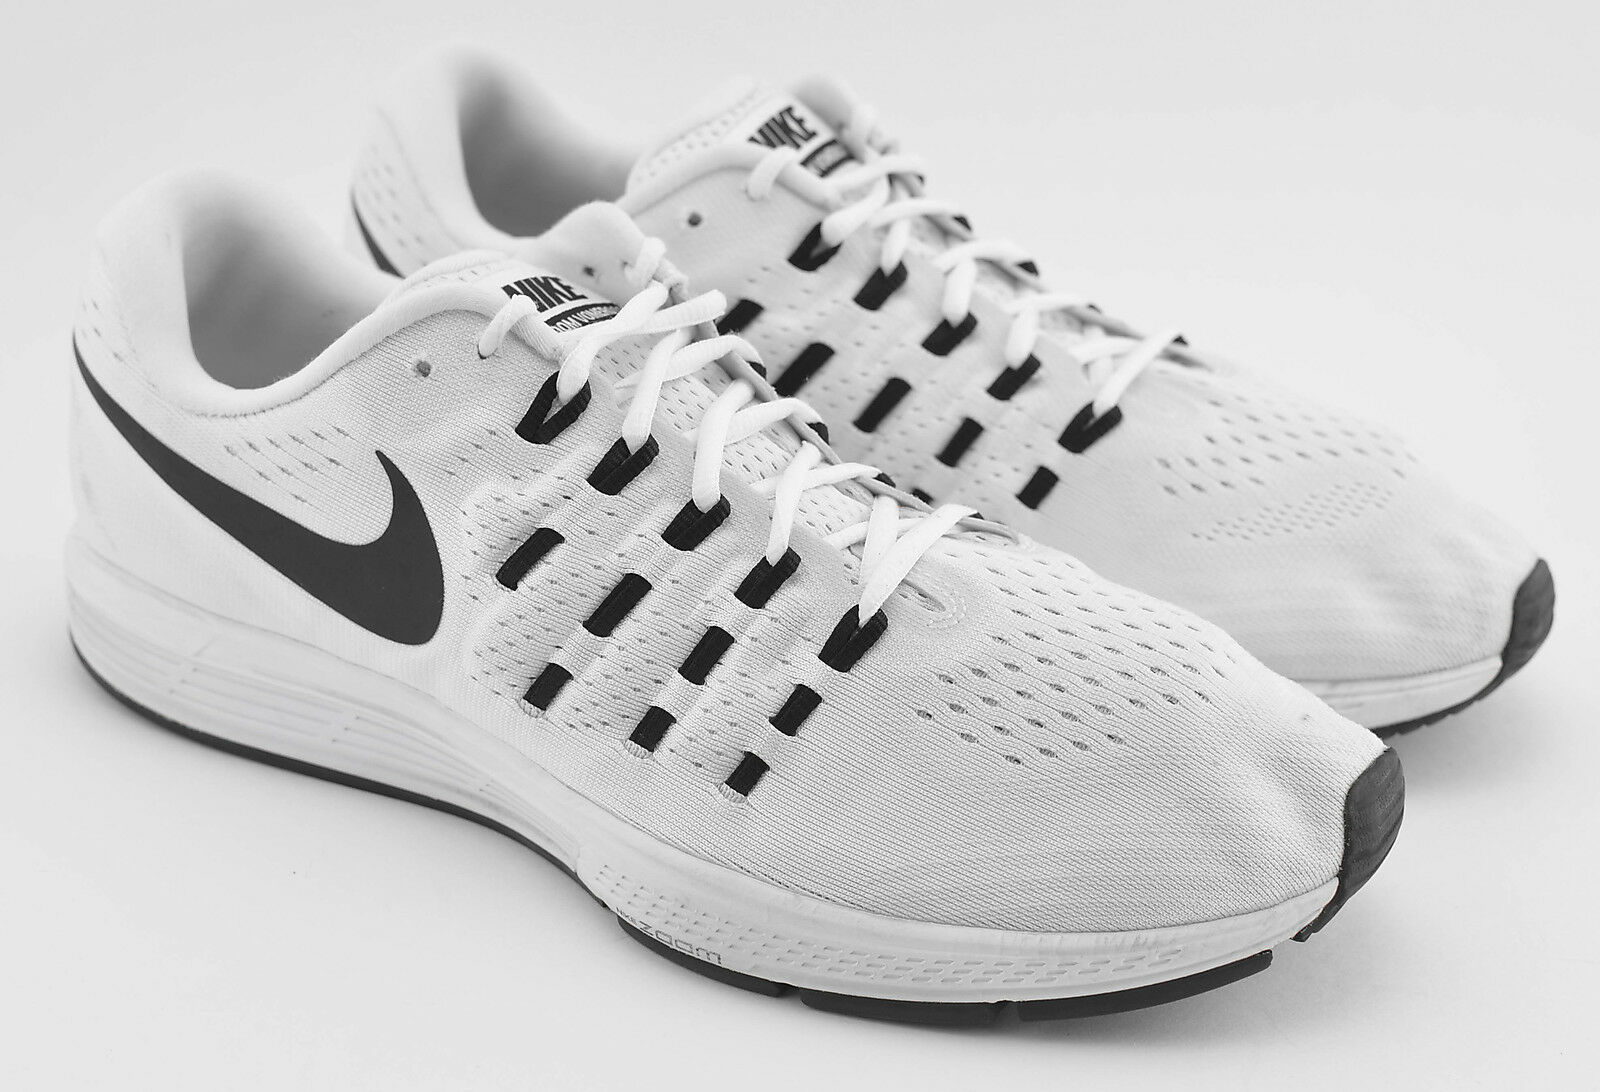 MENS NIKE ZOOM VOMERO 11 RUNNING SHOES SIZE 14 WHITE PURE PLATINUM 838646 100